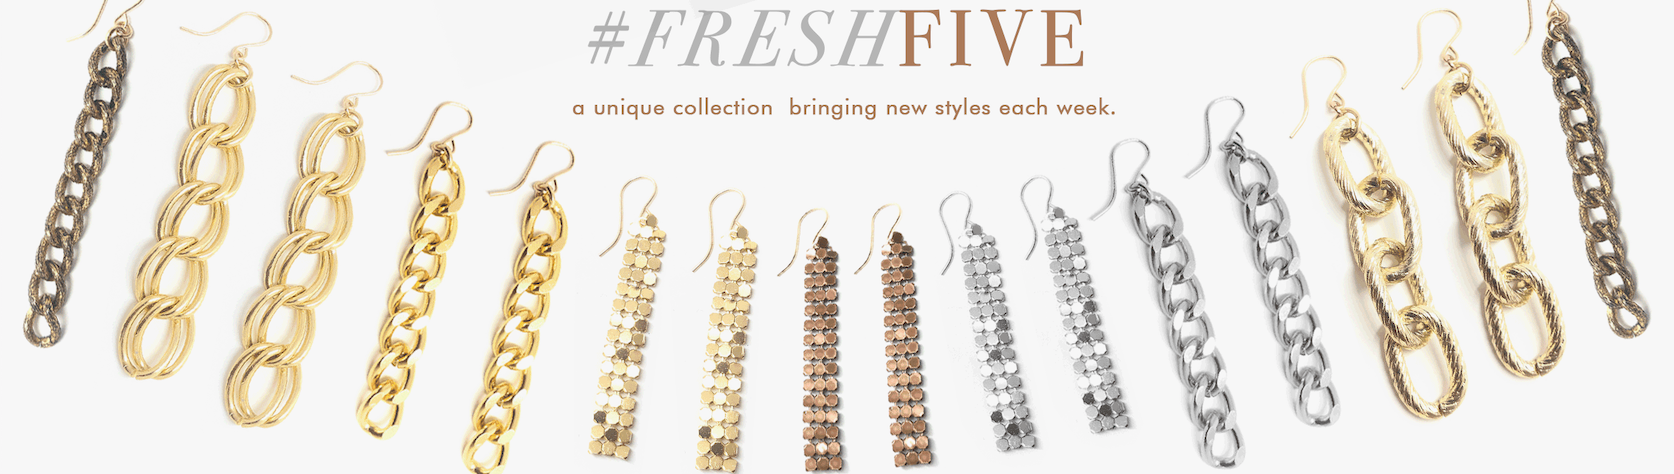 Moon and Lola - Fresh Five Collection